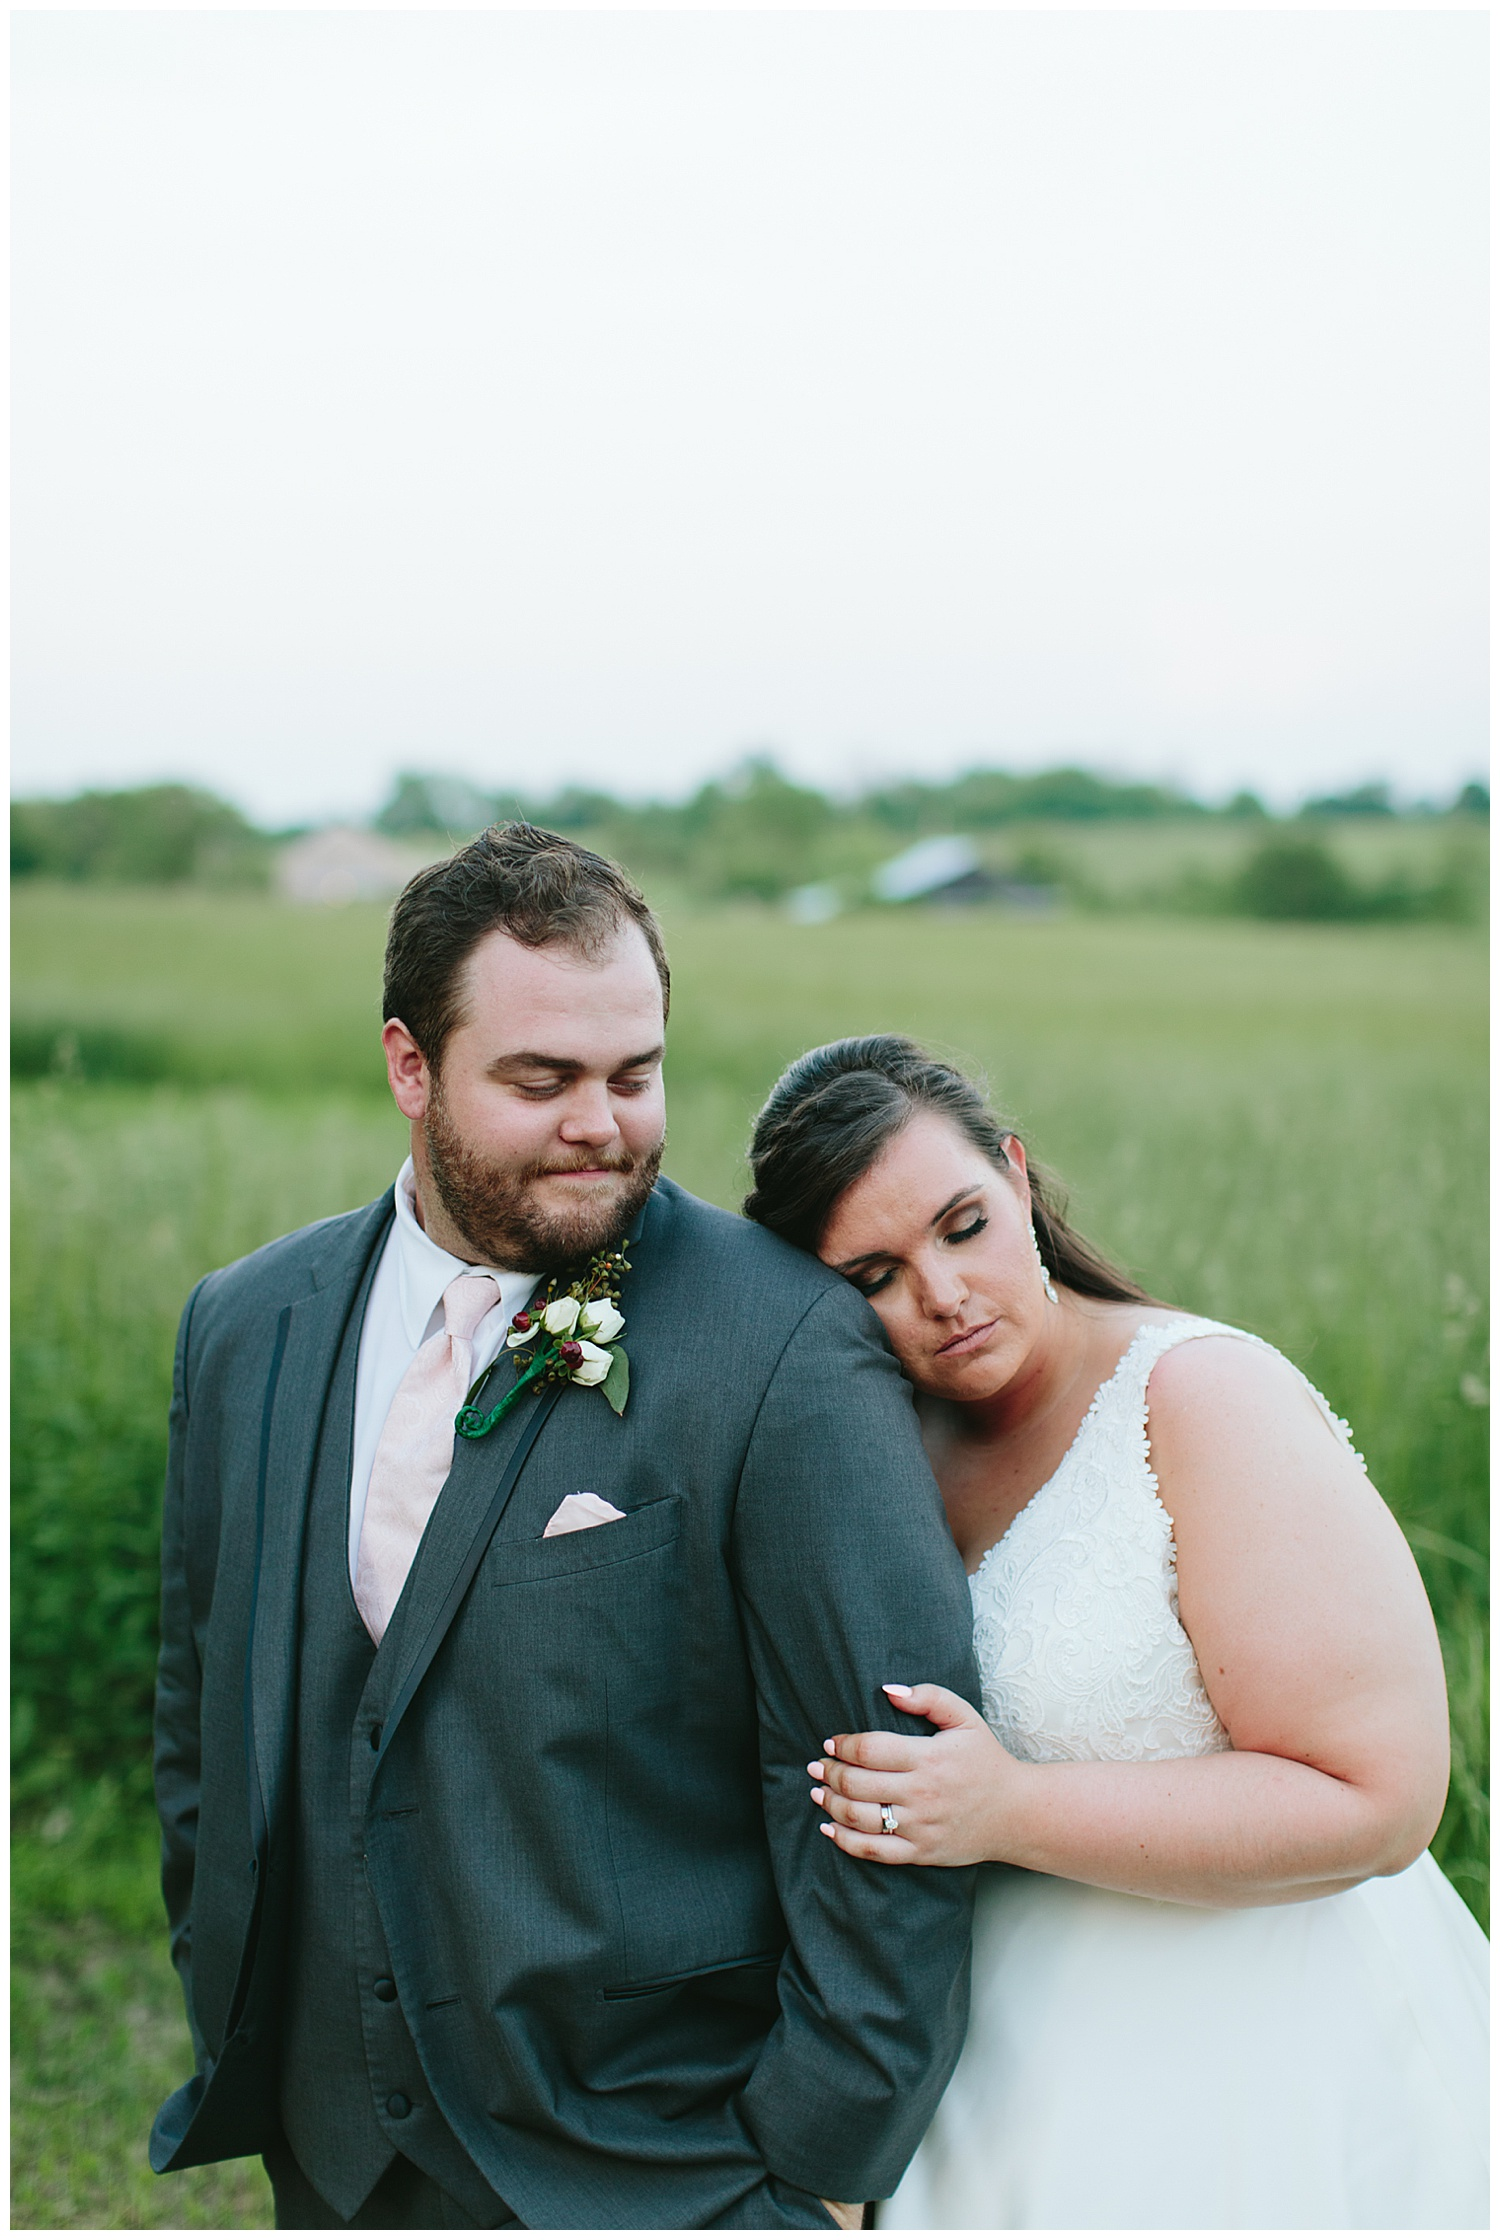 trent.and.kendra.photography.eden.springs.farmstead.shelbyville.wedding-130-1.jpg